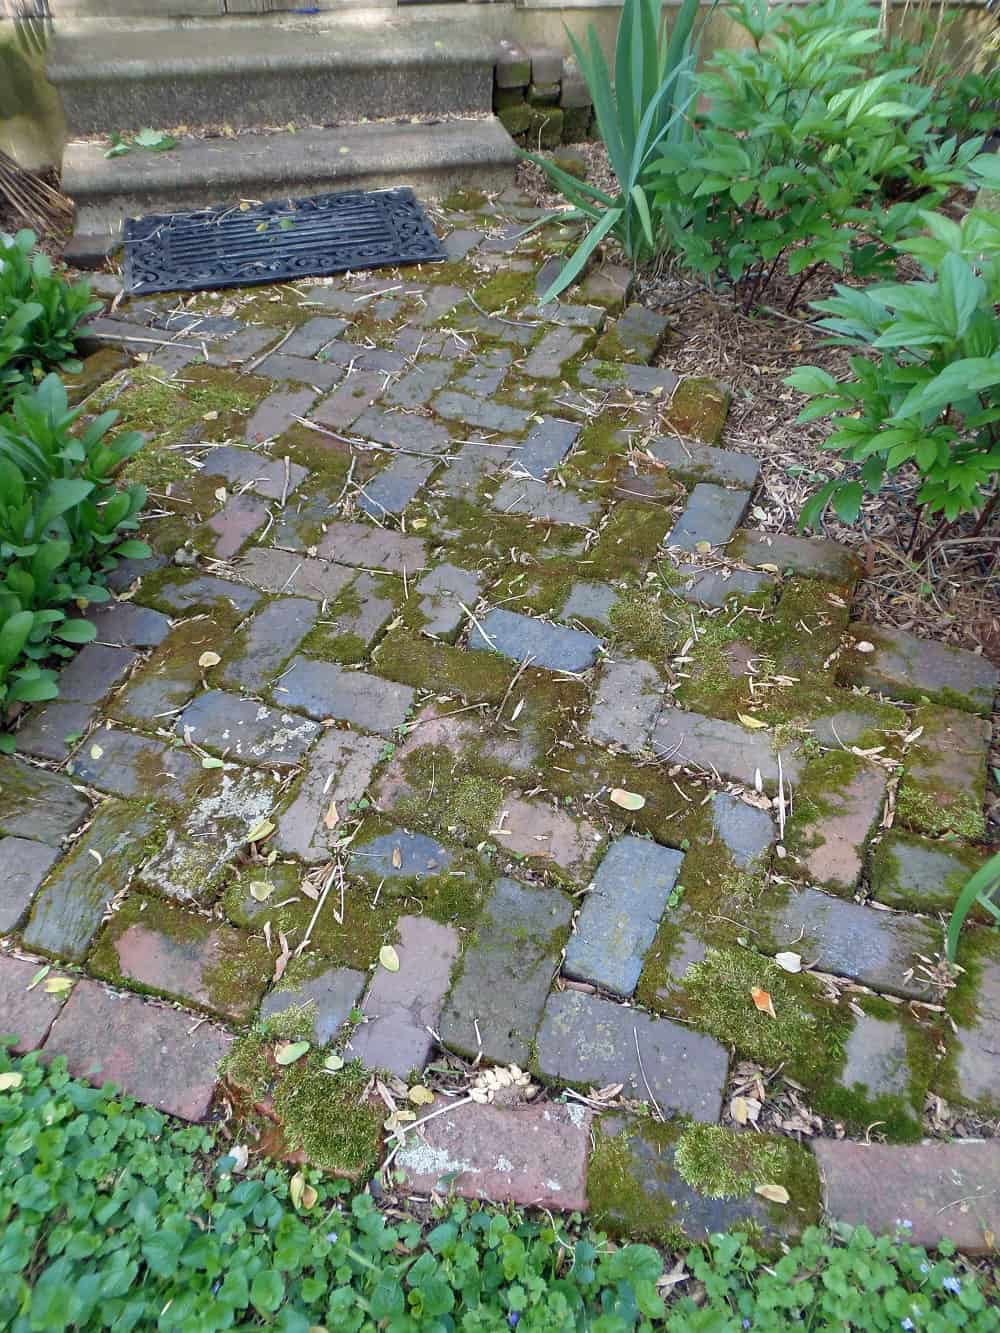 Herringbone Brick Sidewalk With Moss Growing on It